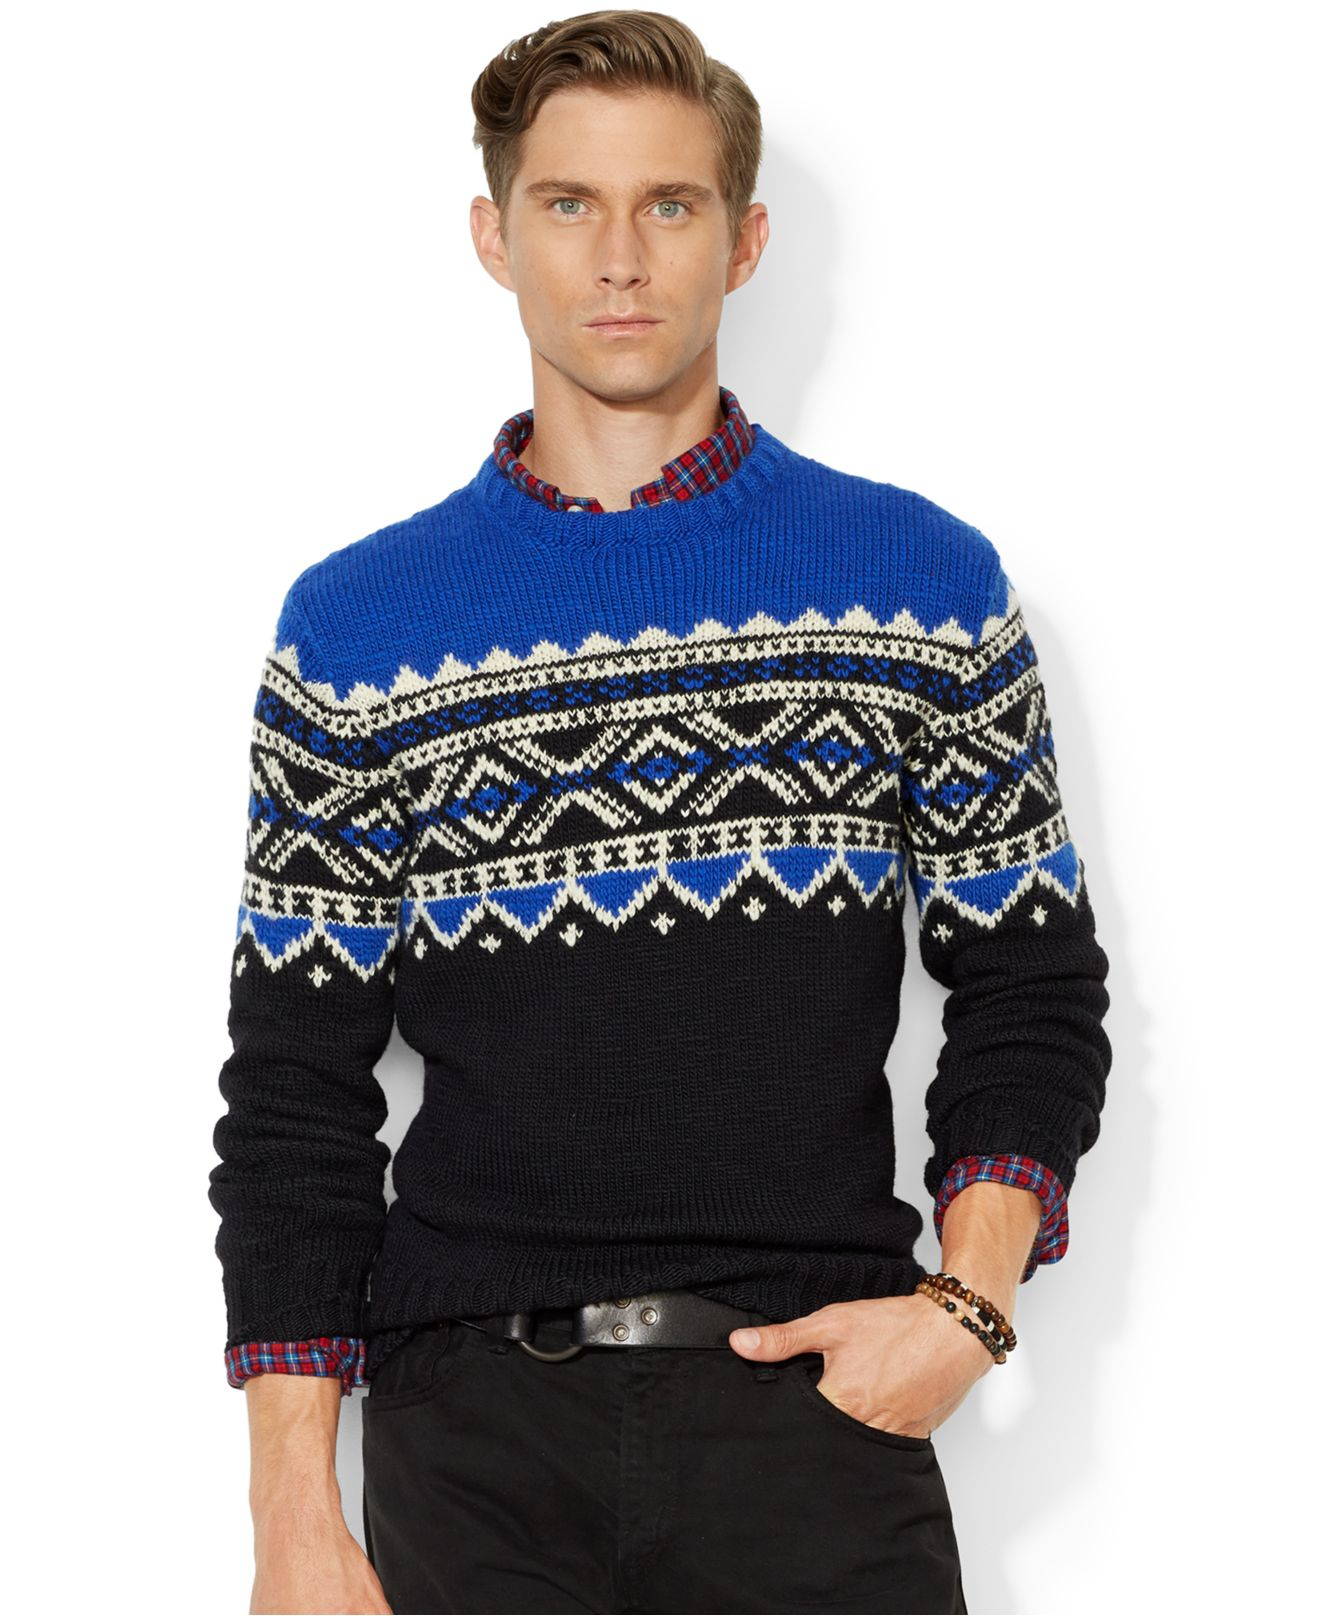 This nordic mens wool sweater is exceptionally warm as it is made from % pure new wool. The main body is knitted using a regular knitting stitch5/5.